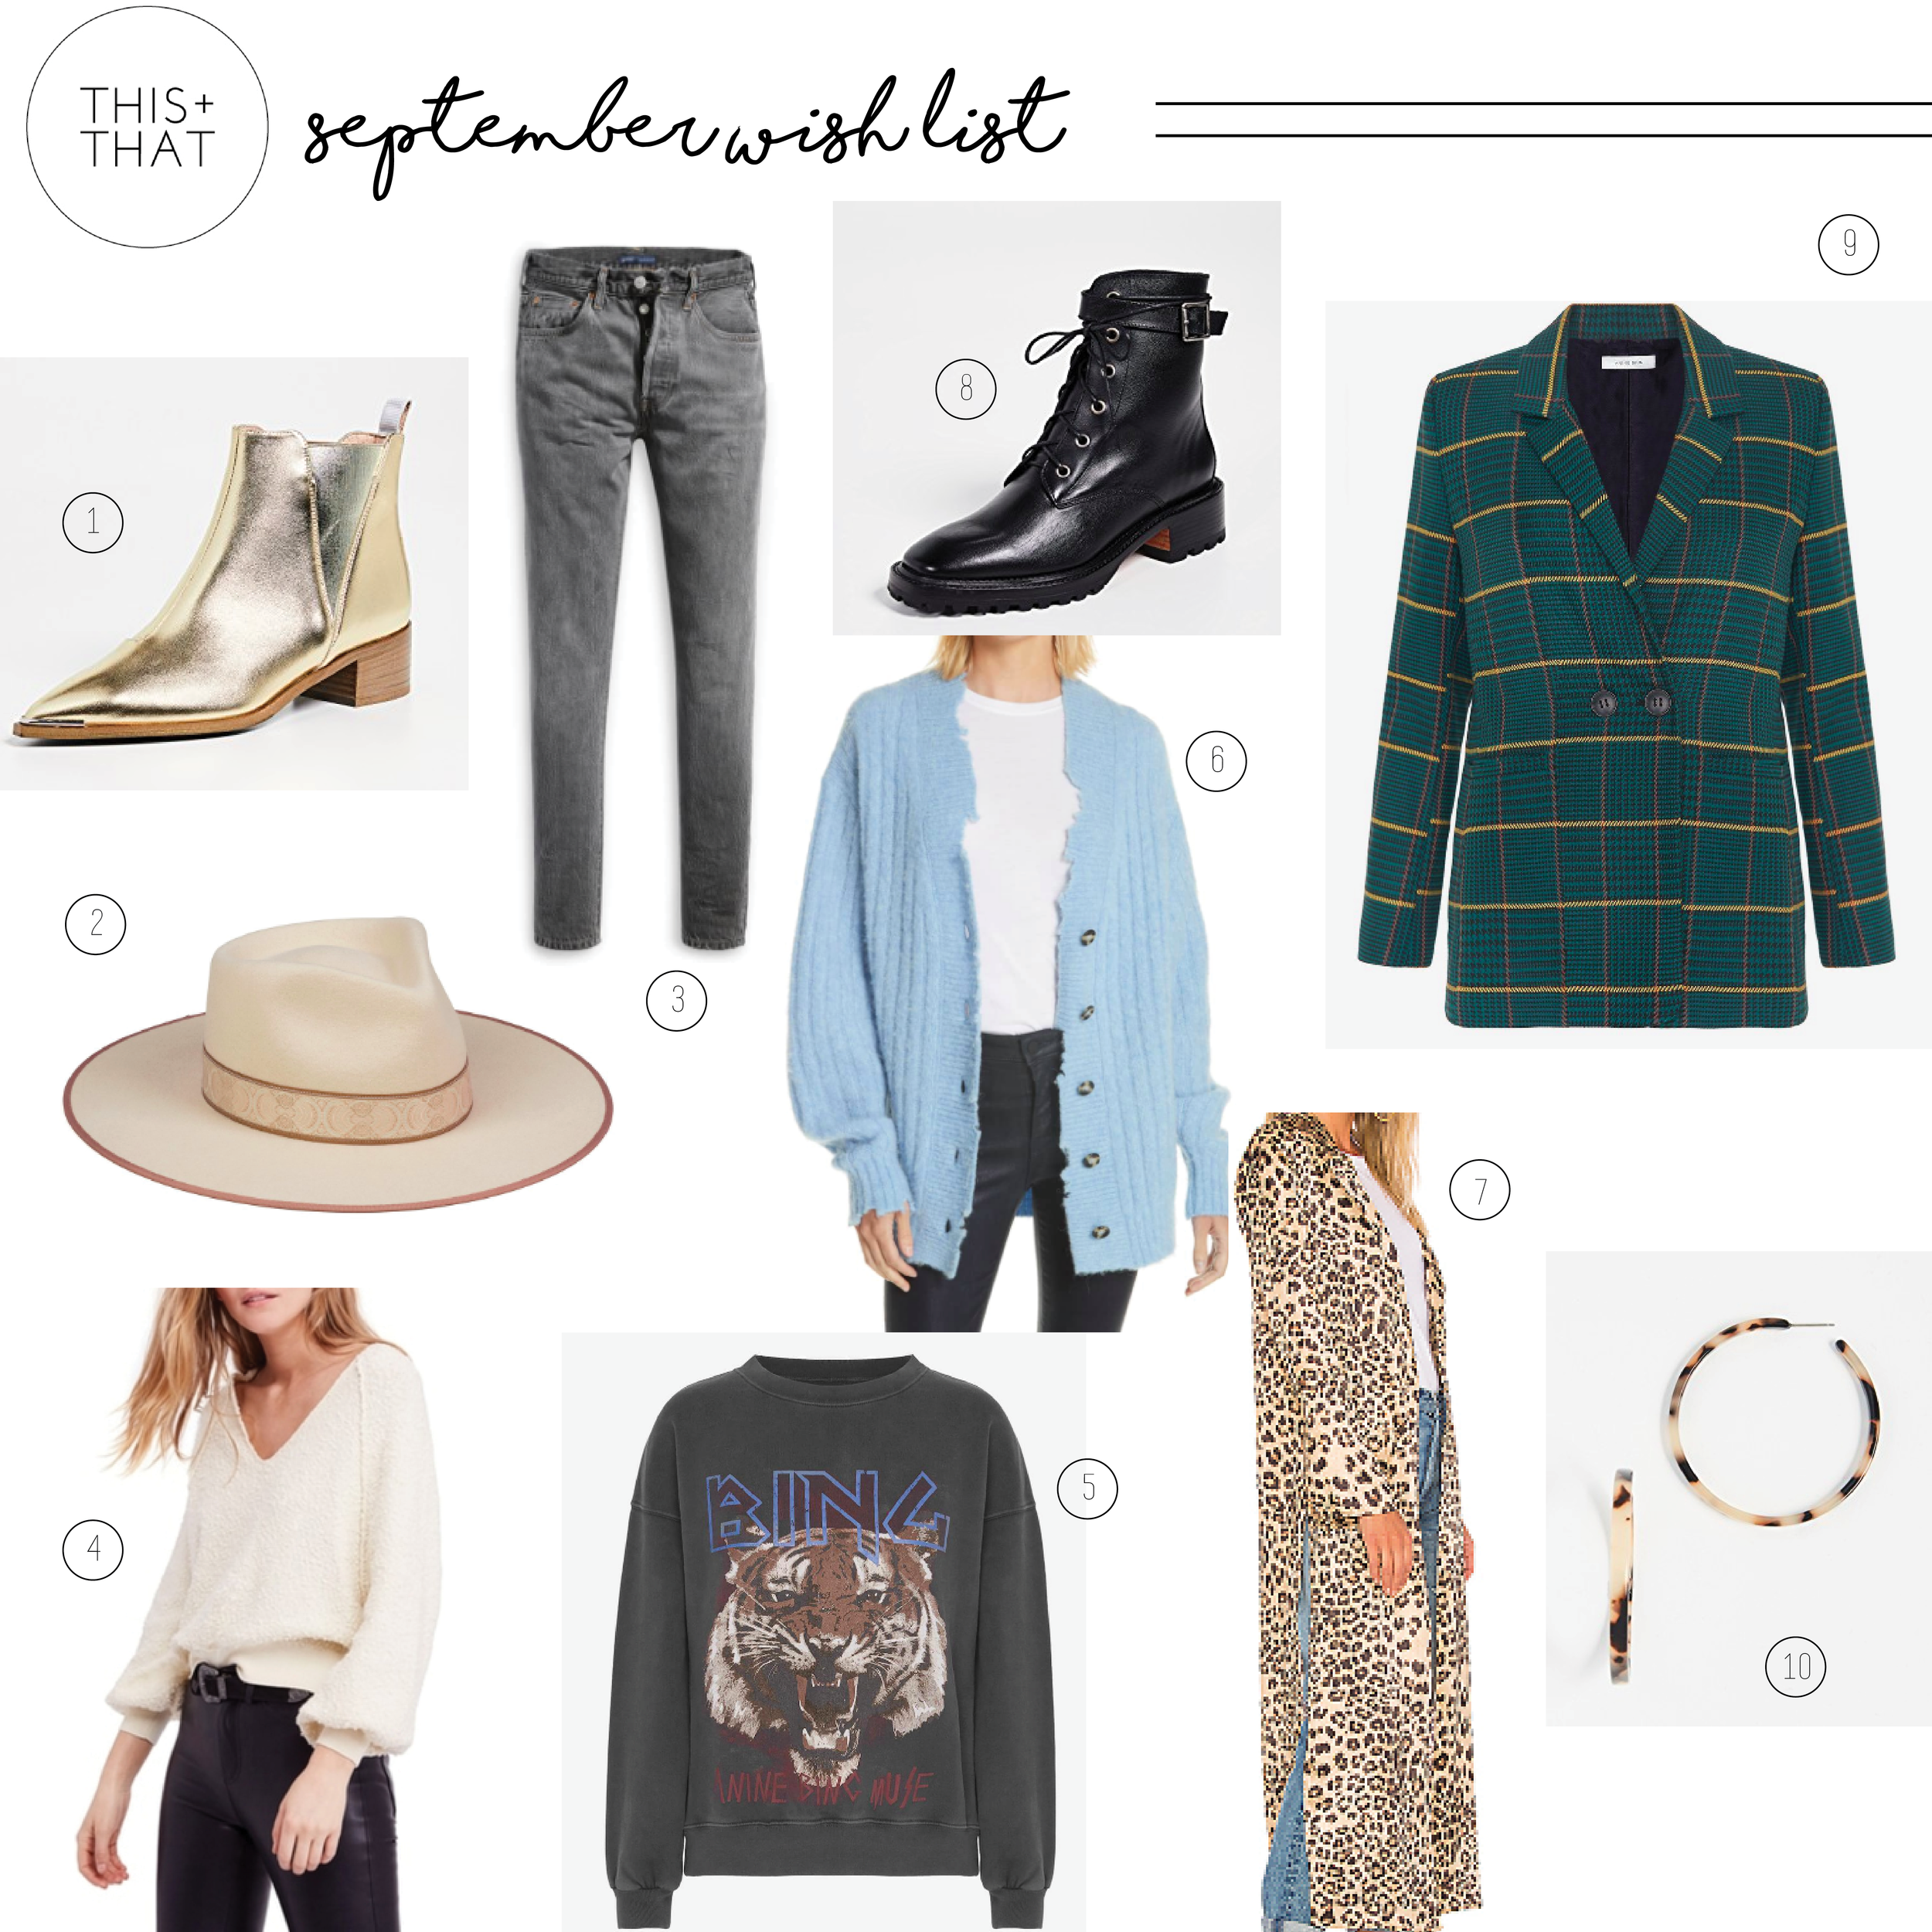 september-wish-list-this-and-that-blog.png